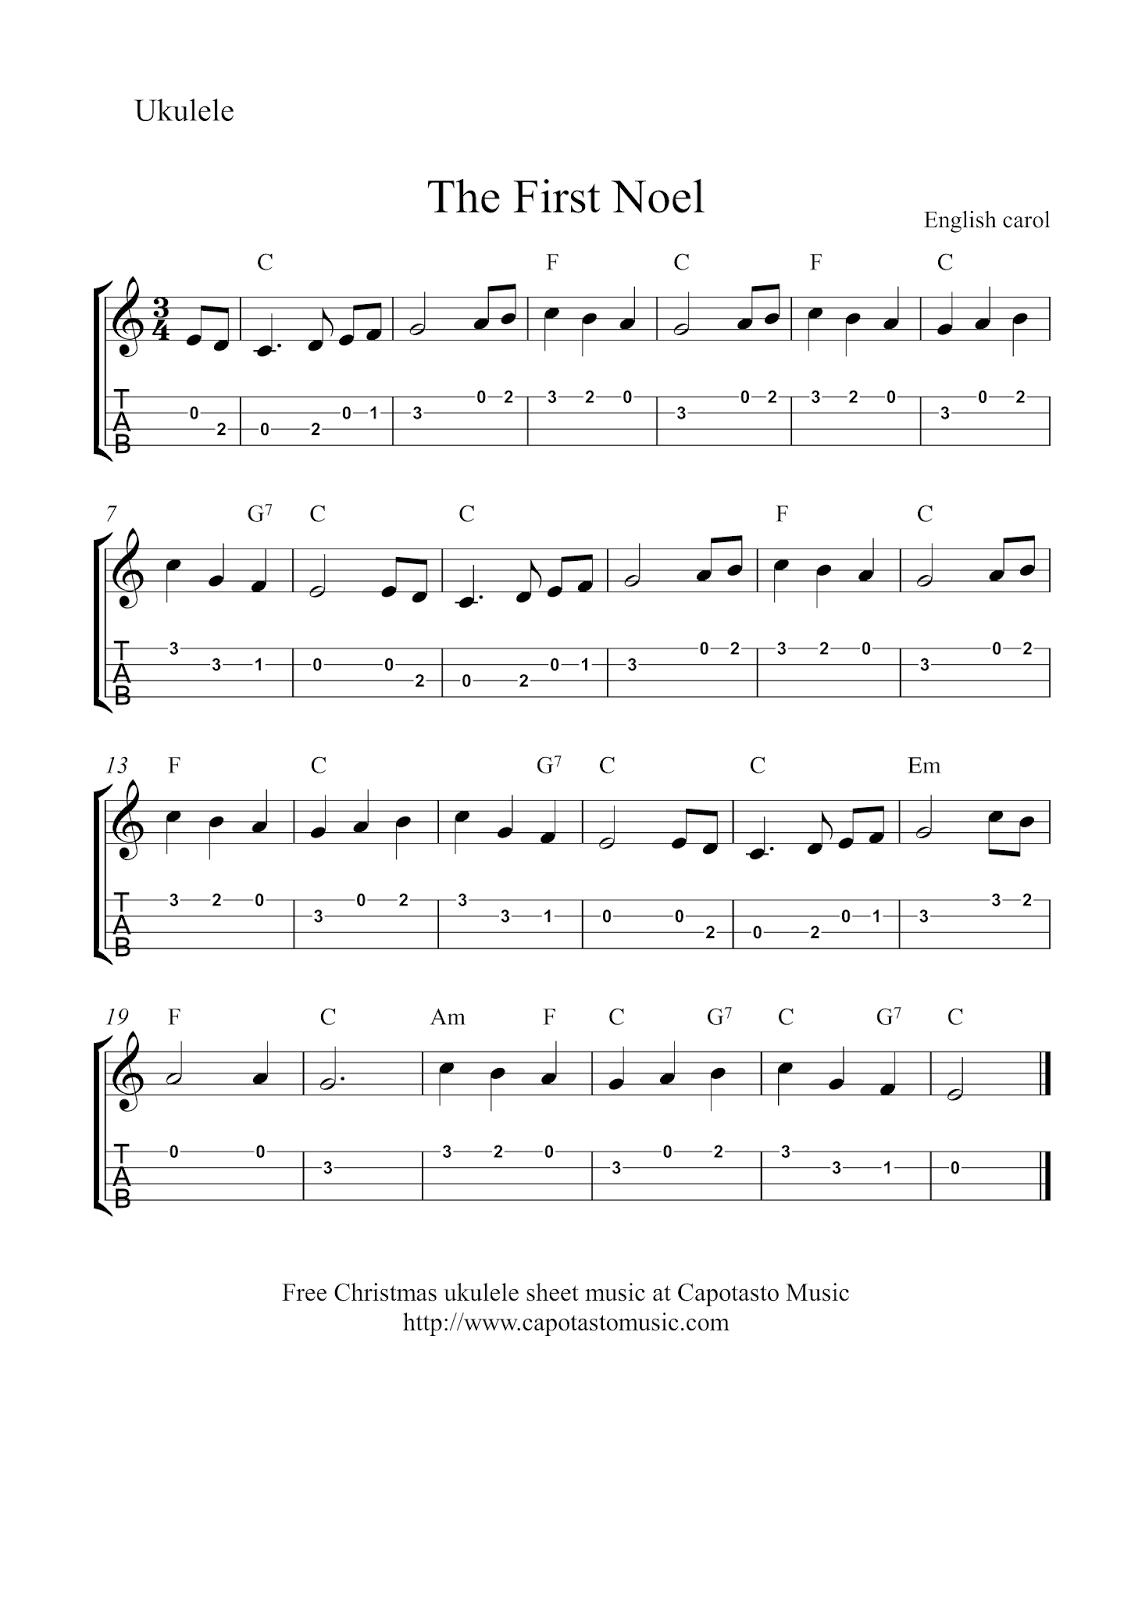 Free Sheet Music Scores Free Christmas ukulele sheet